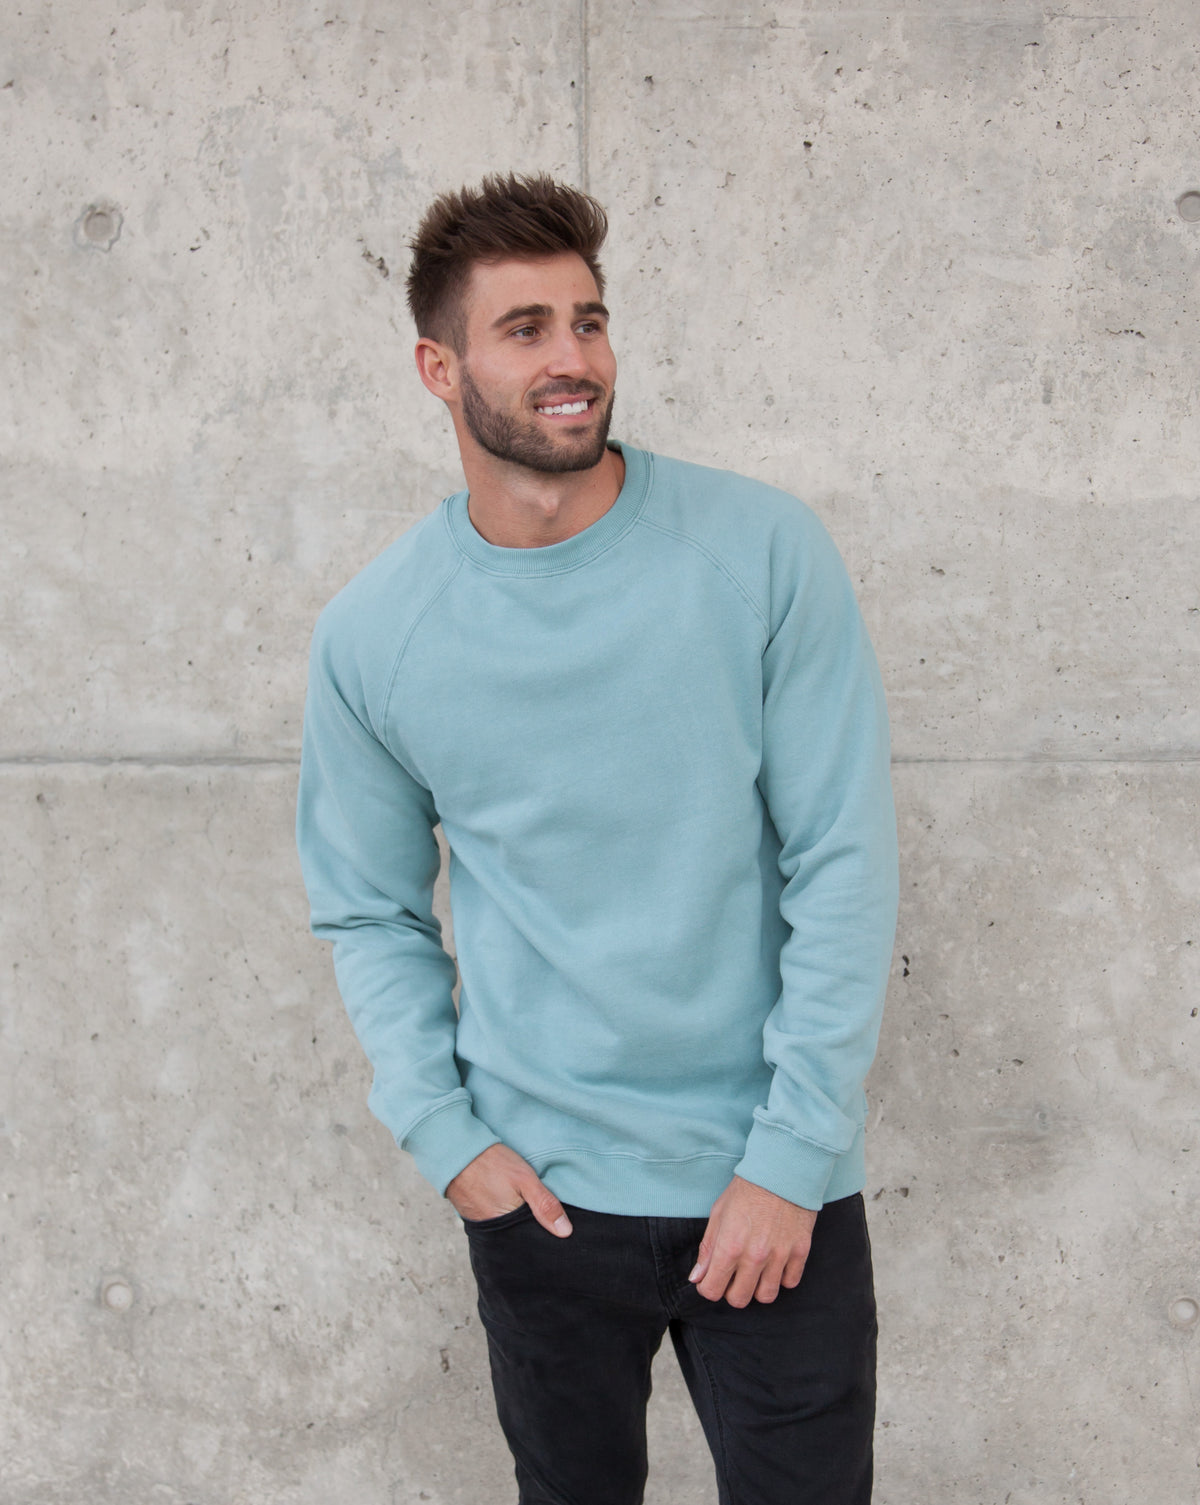 MAGO crewneck sweatshirt in Lake